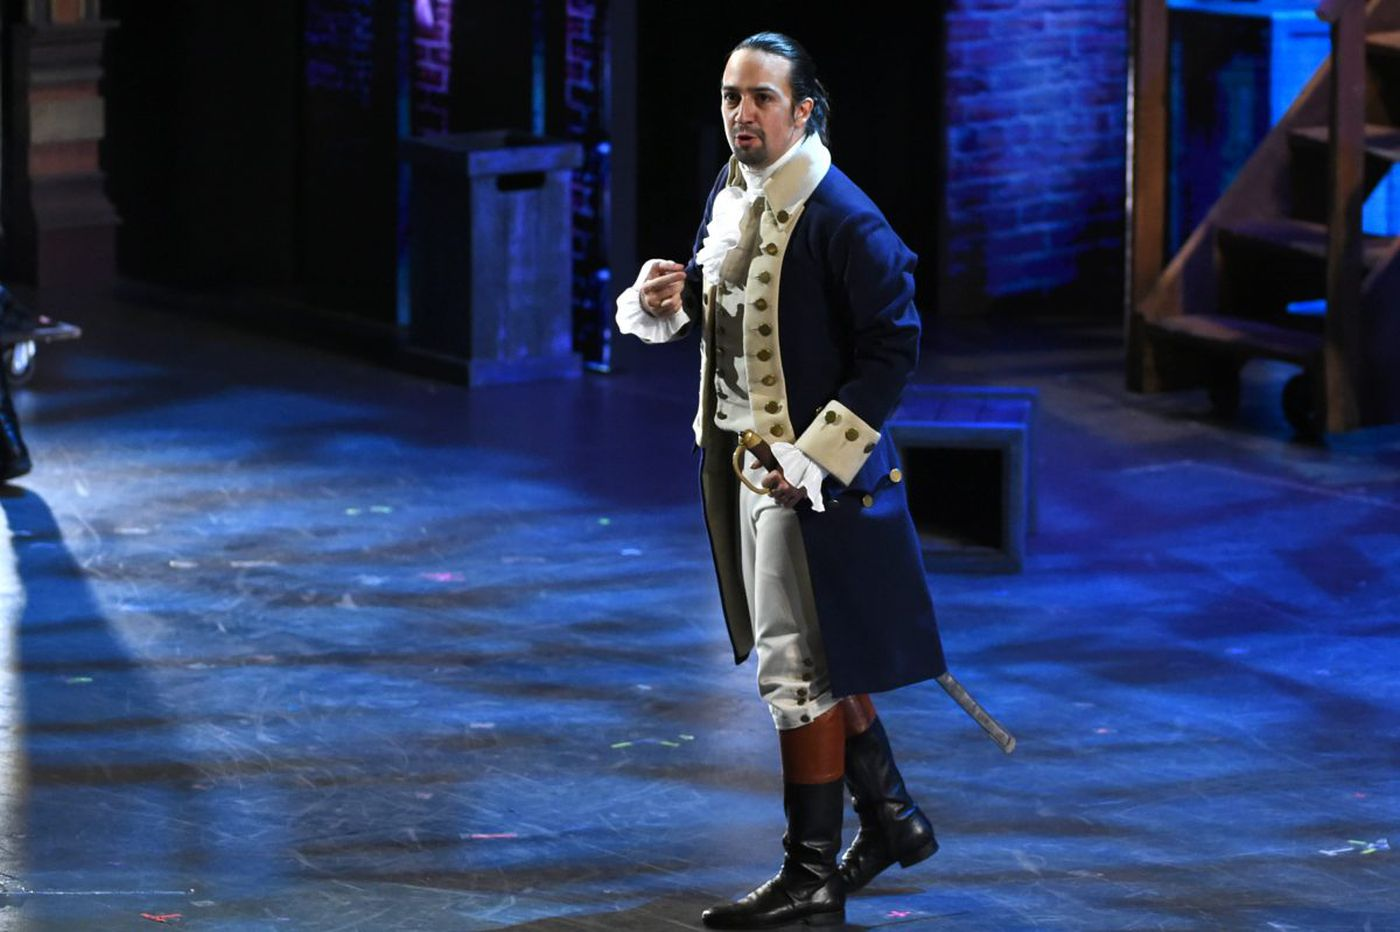 Lin-Manuel Miranda partners with the Decemberists for 'Hamilton' song about Ben Franklin